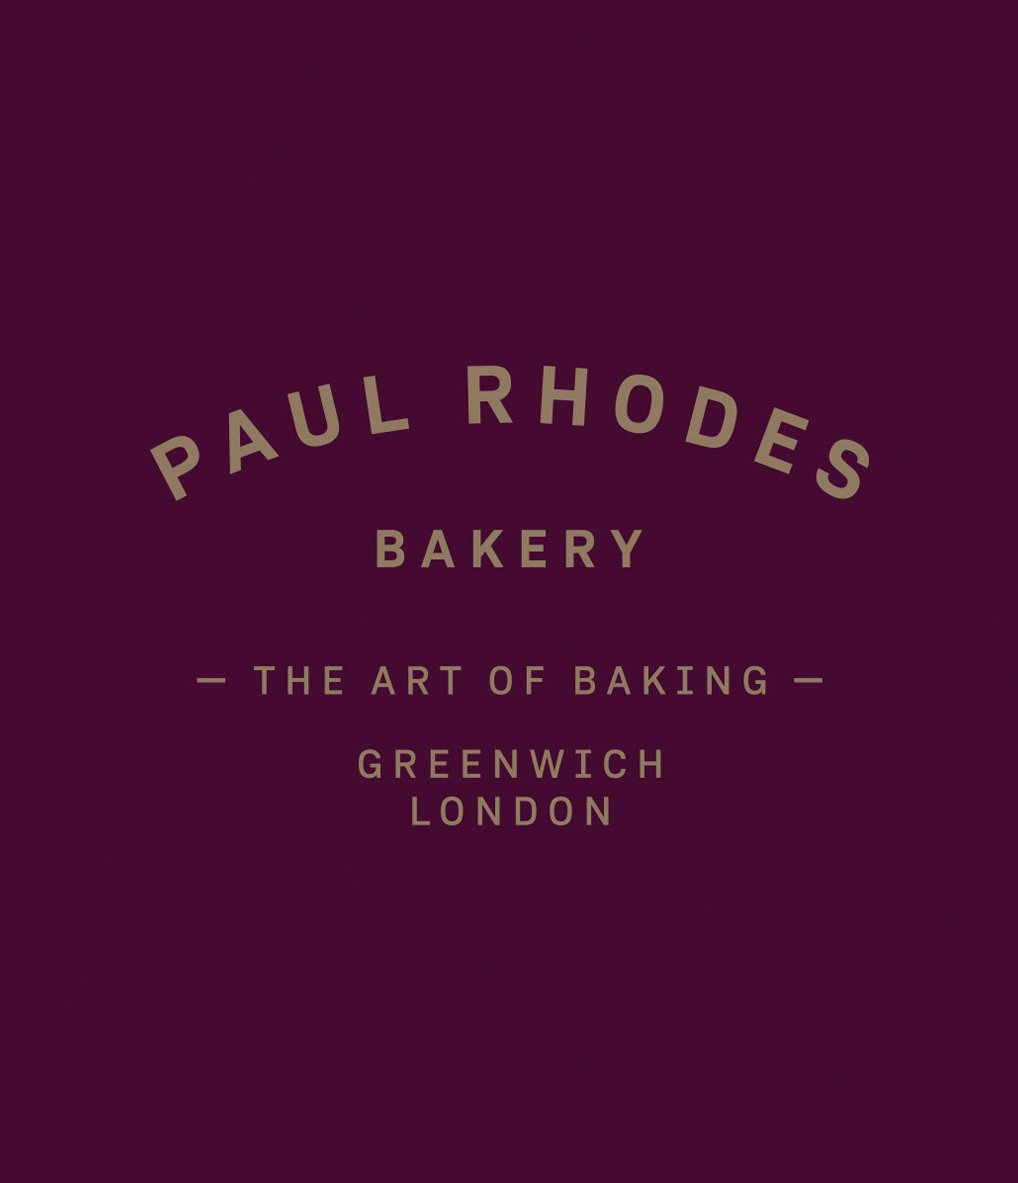 Paul Rhodes Bakery Brand Book created by Spinach Design